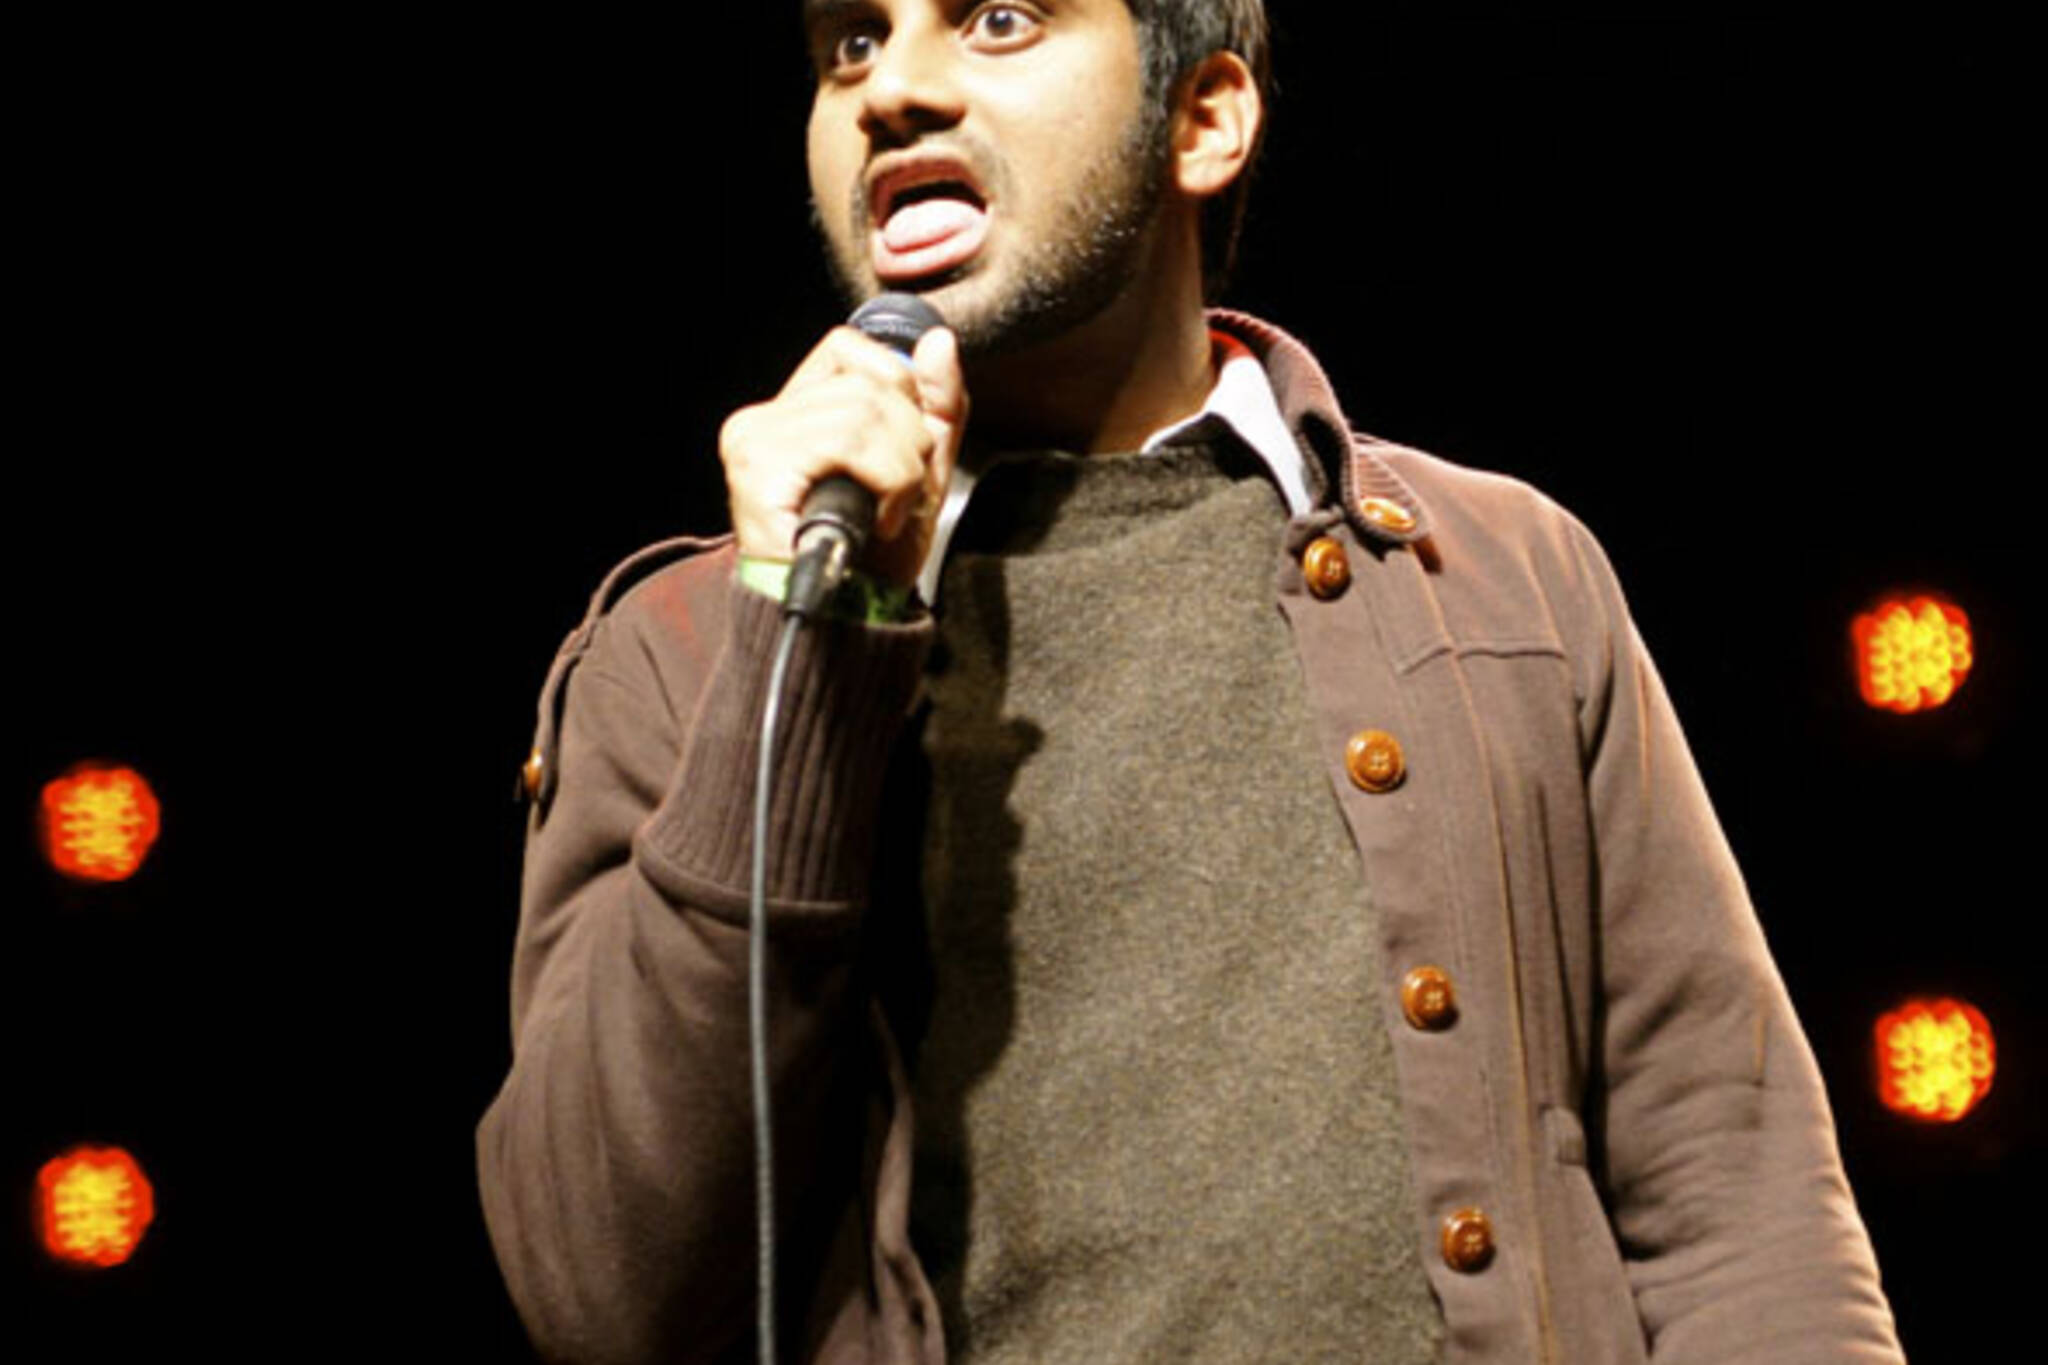 Aziz Ansari brings stand-up to The Mod Club in Toronto